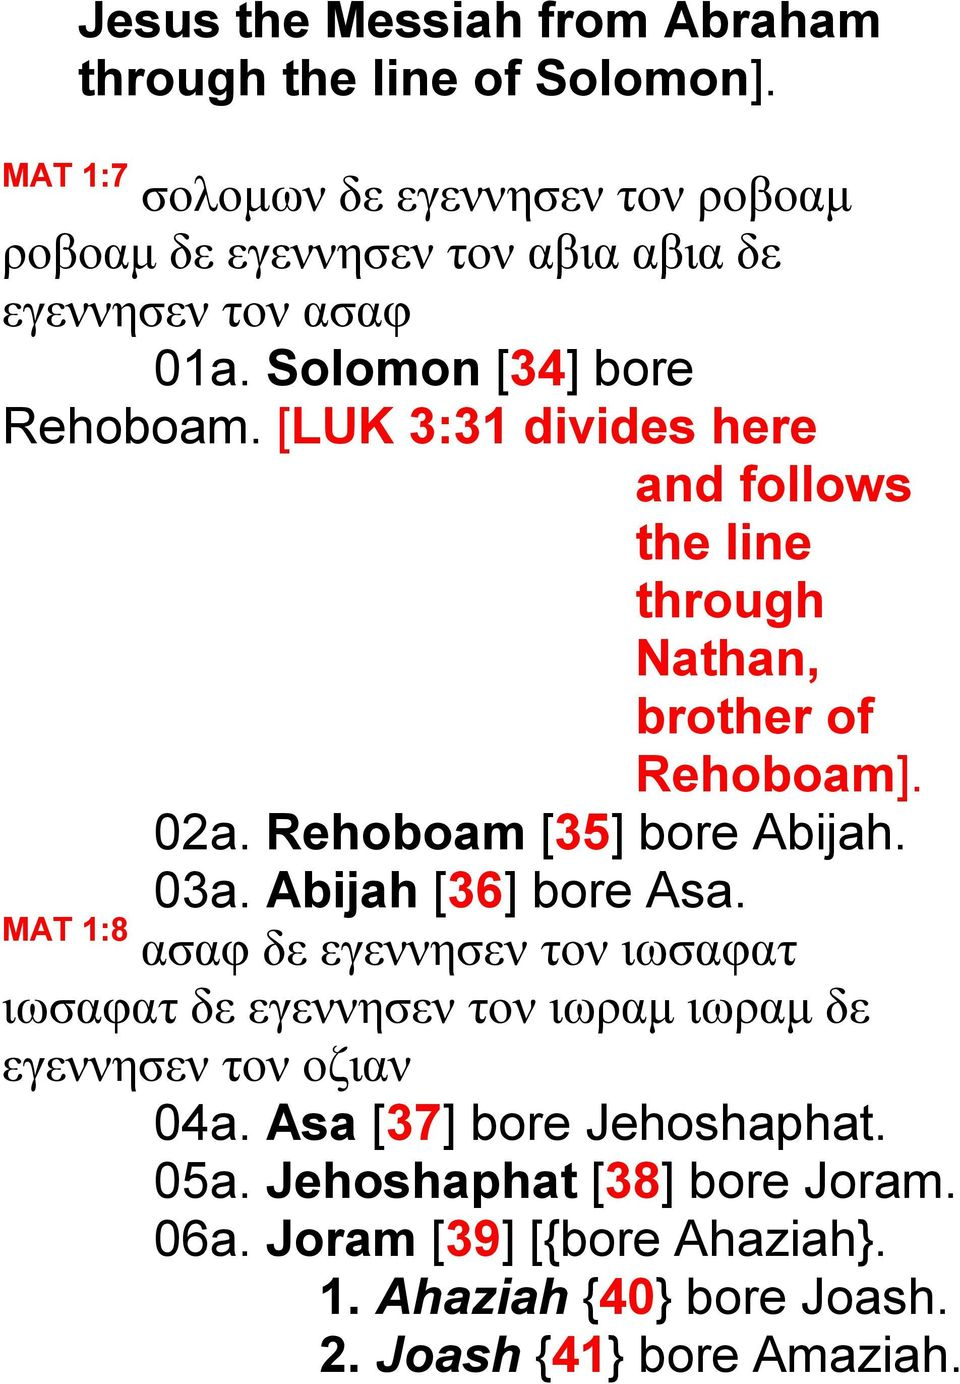 [LUK 3:31 divides here and follows the line through Nathan, brother of Rehoboam]. 02a. Rehoboam [35] bore Abijah. 03a. Abijah [36] bore Asa.